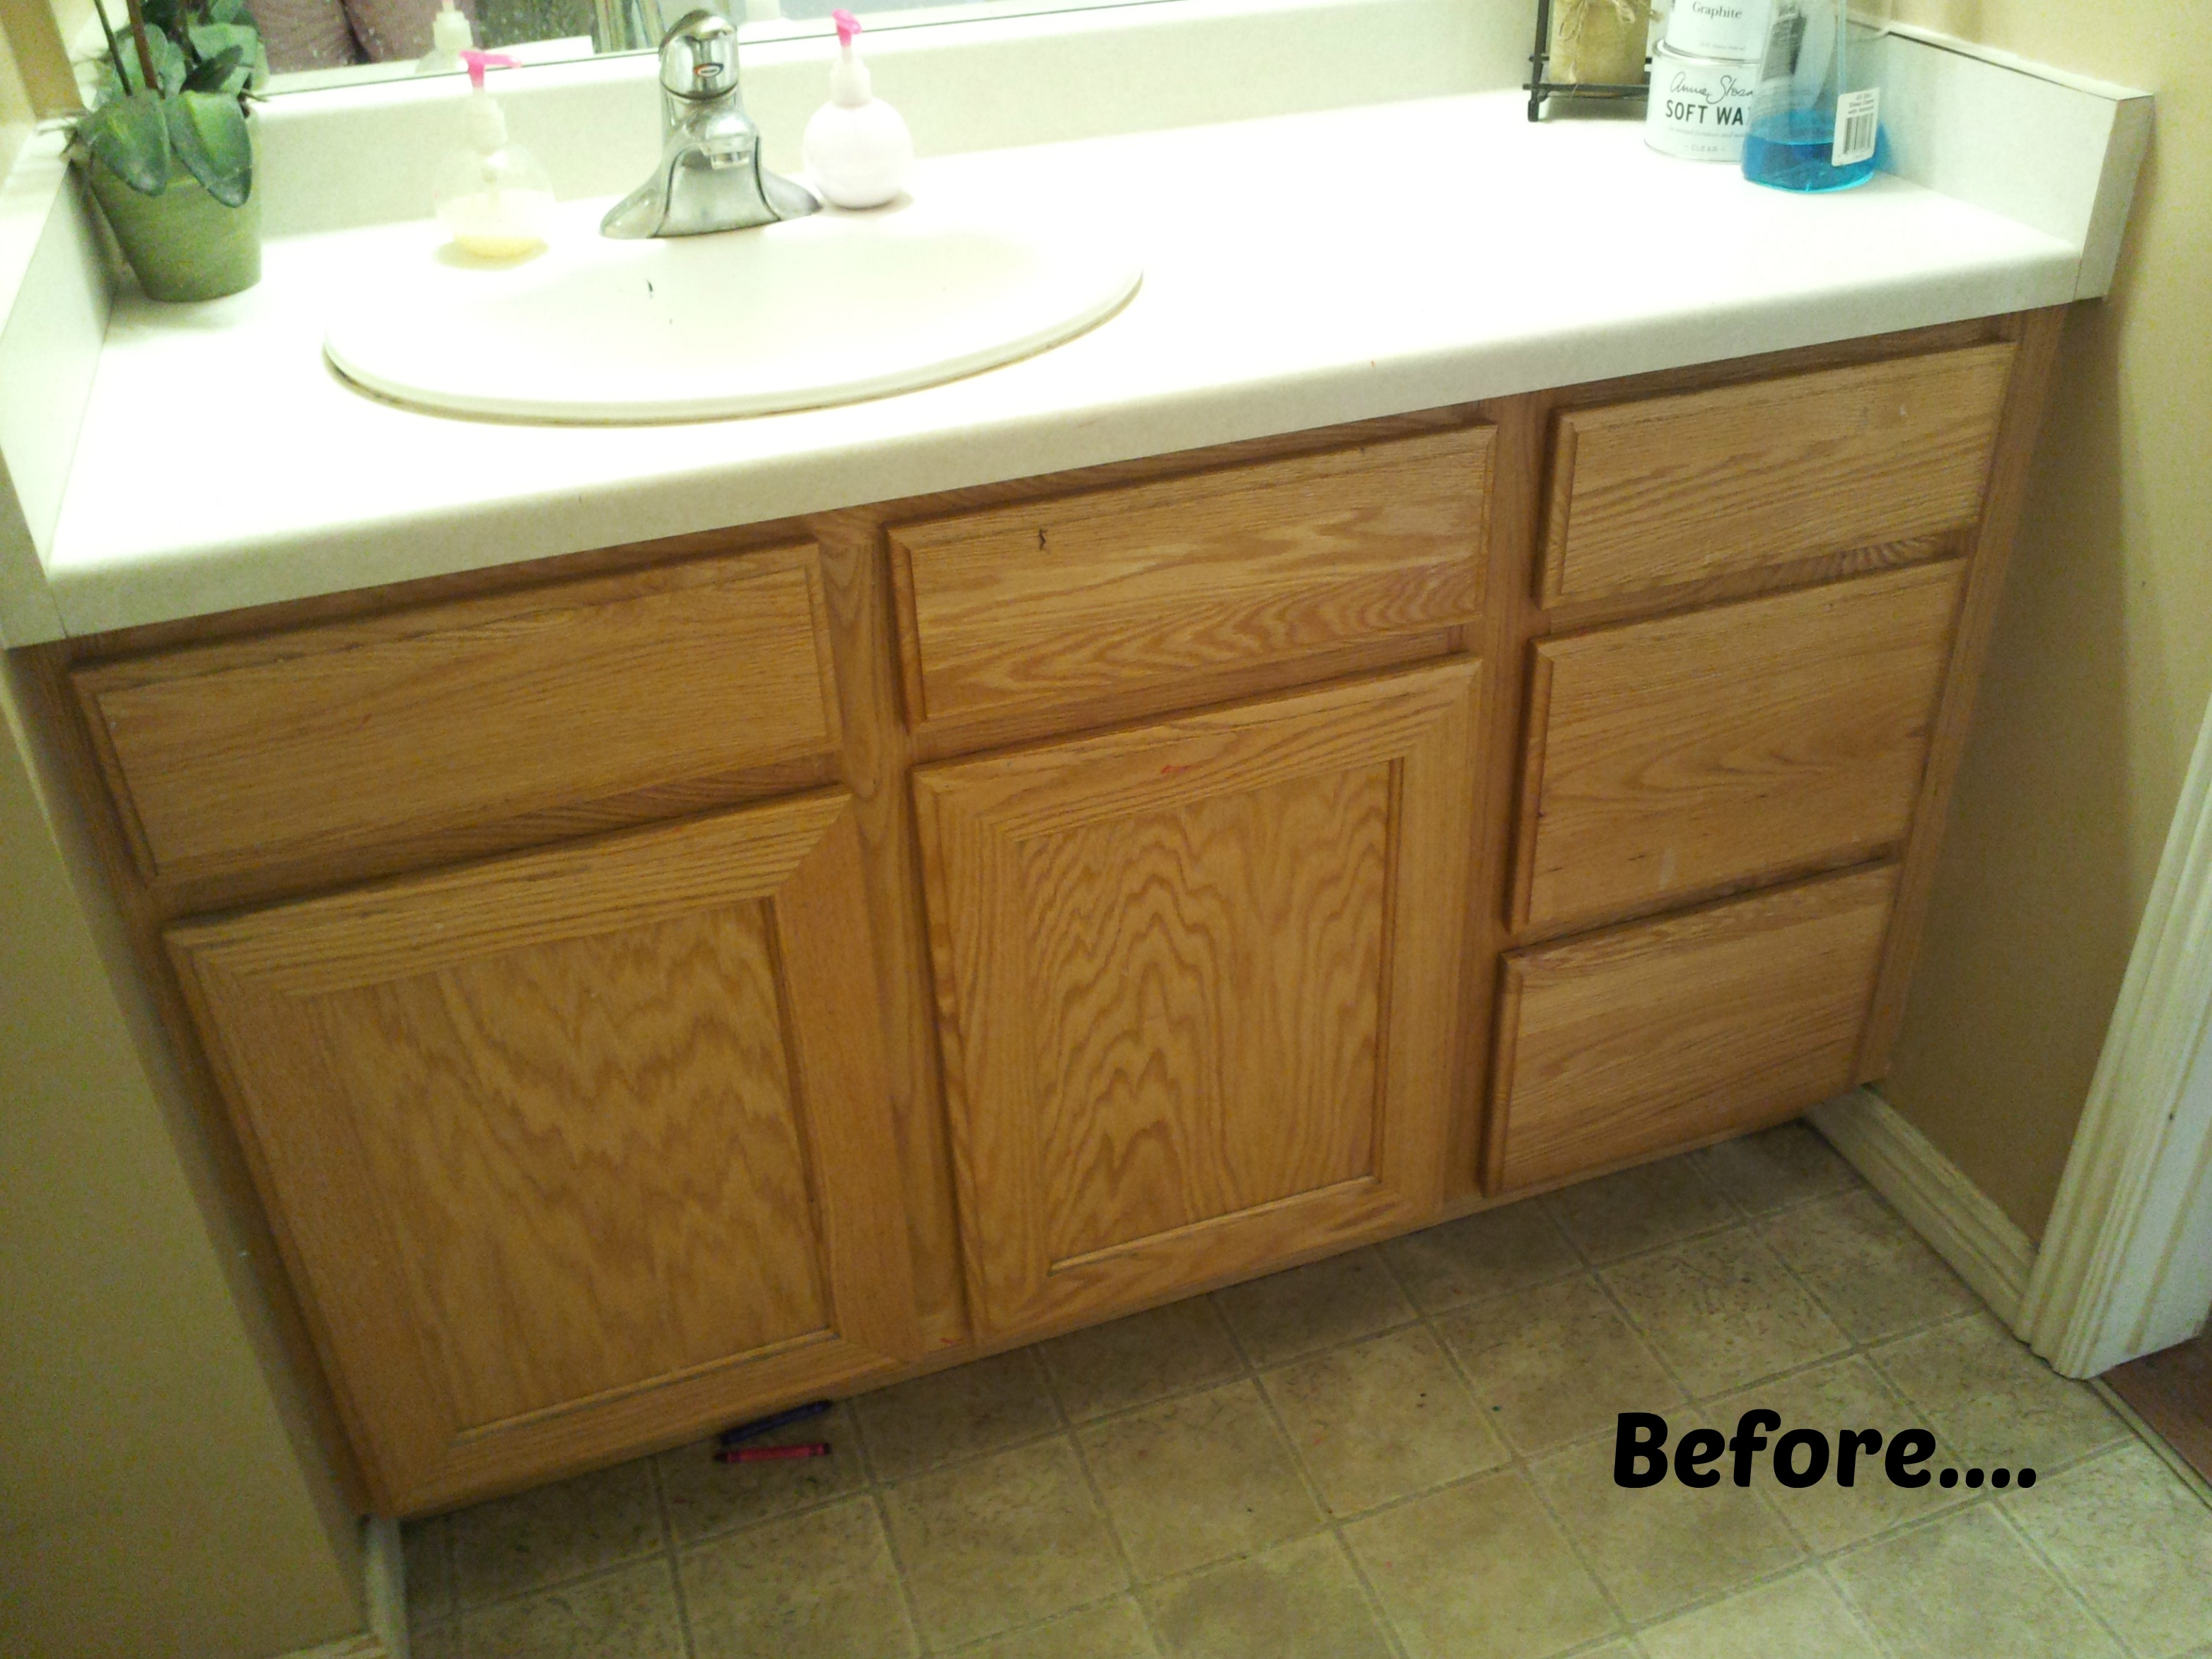 Refinishing A Bathroom Vanity